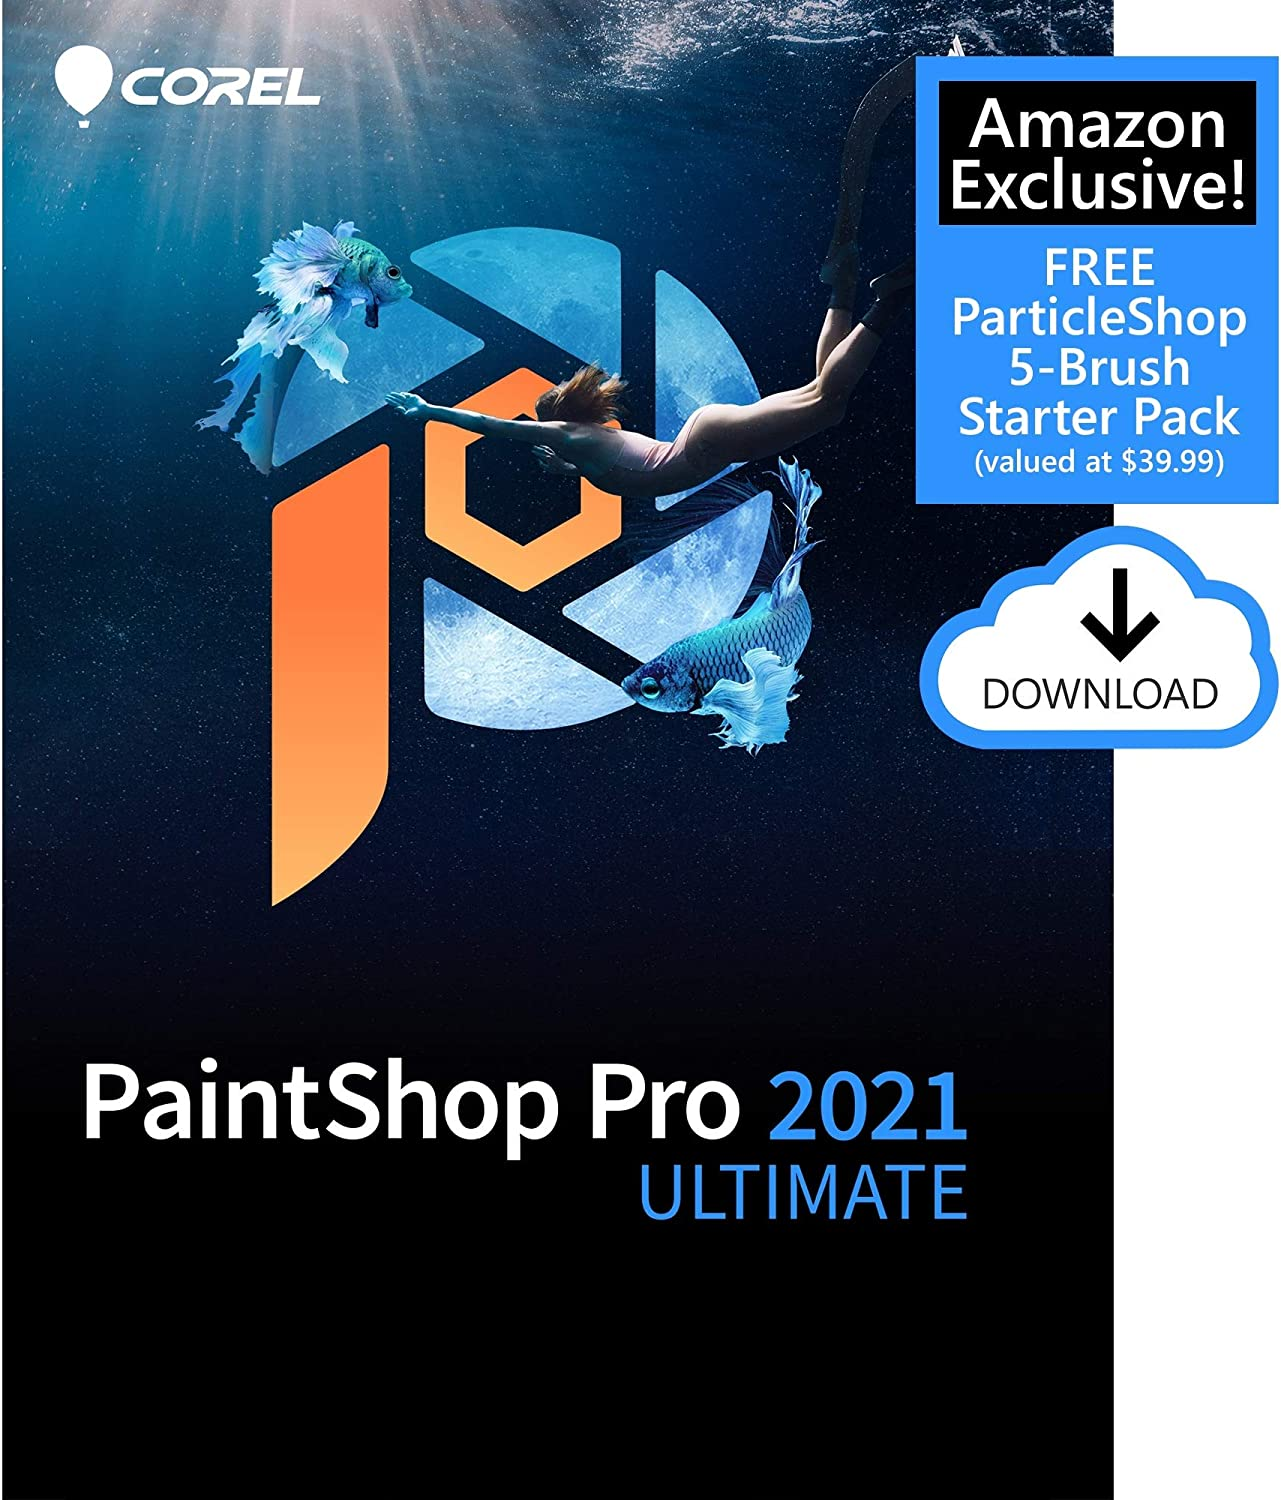 Amazon Com Corel Paintshop Pro 2021 Ultimate Photo Editing Graphic Design Software Plus Creative Collection Amazon Exclusive 5 Brush Starter Pack Pc Download Software